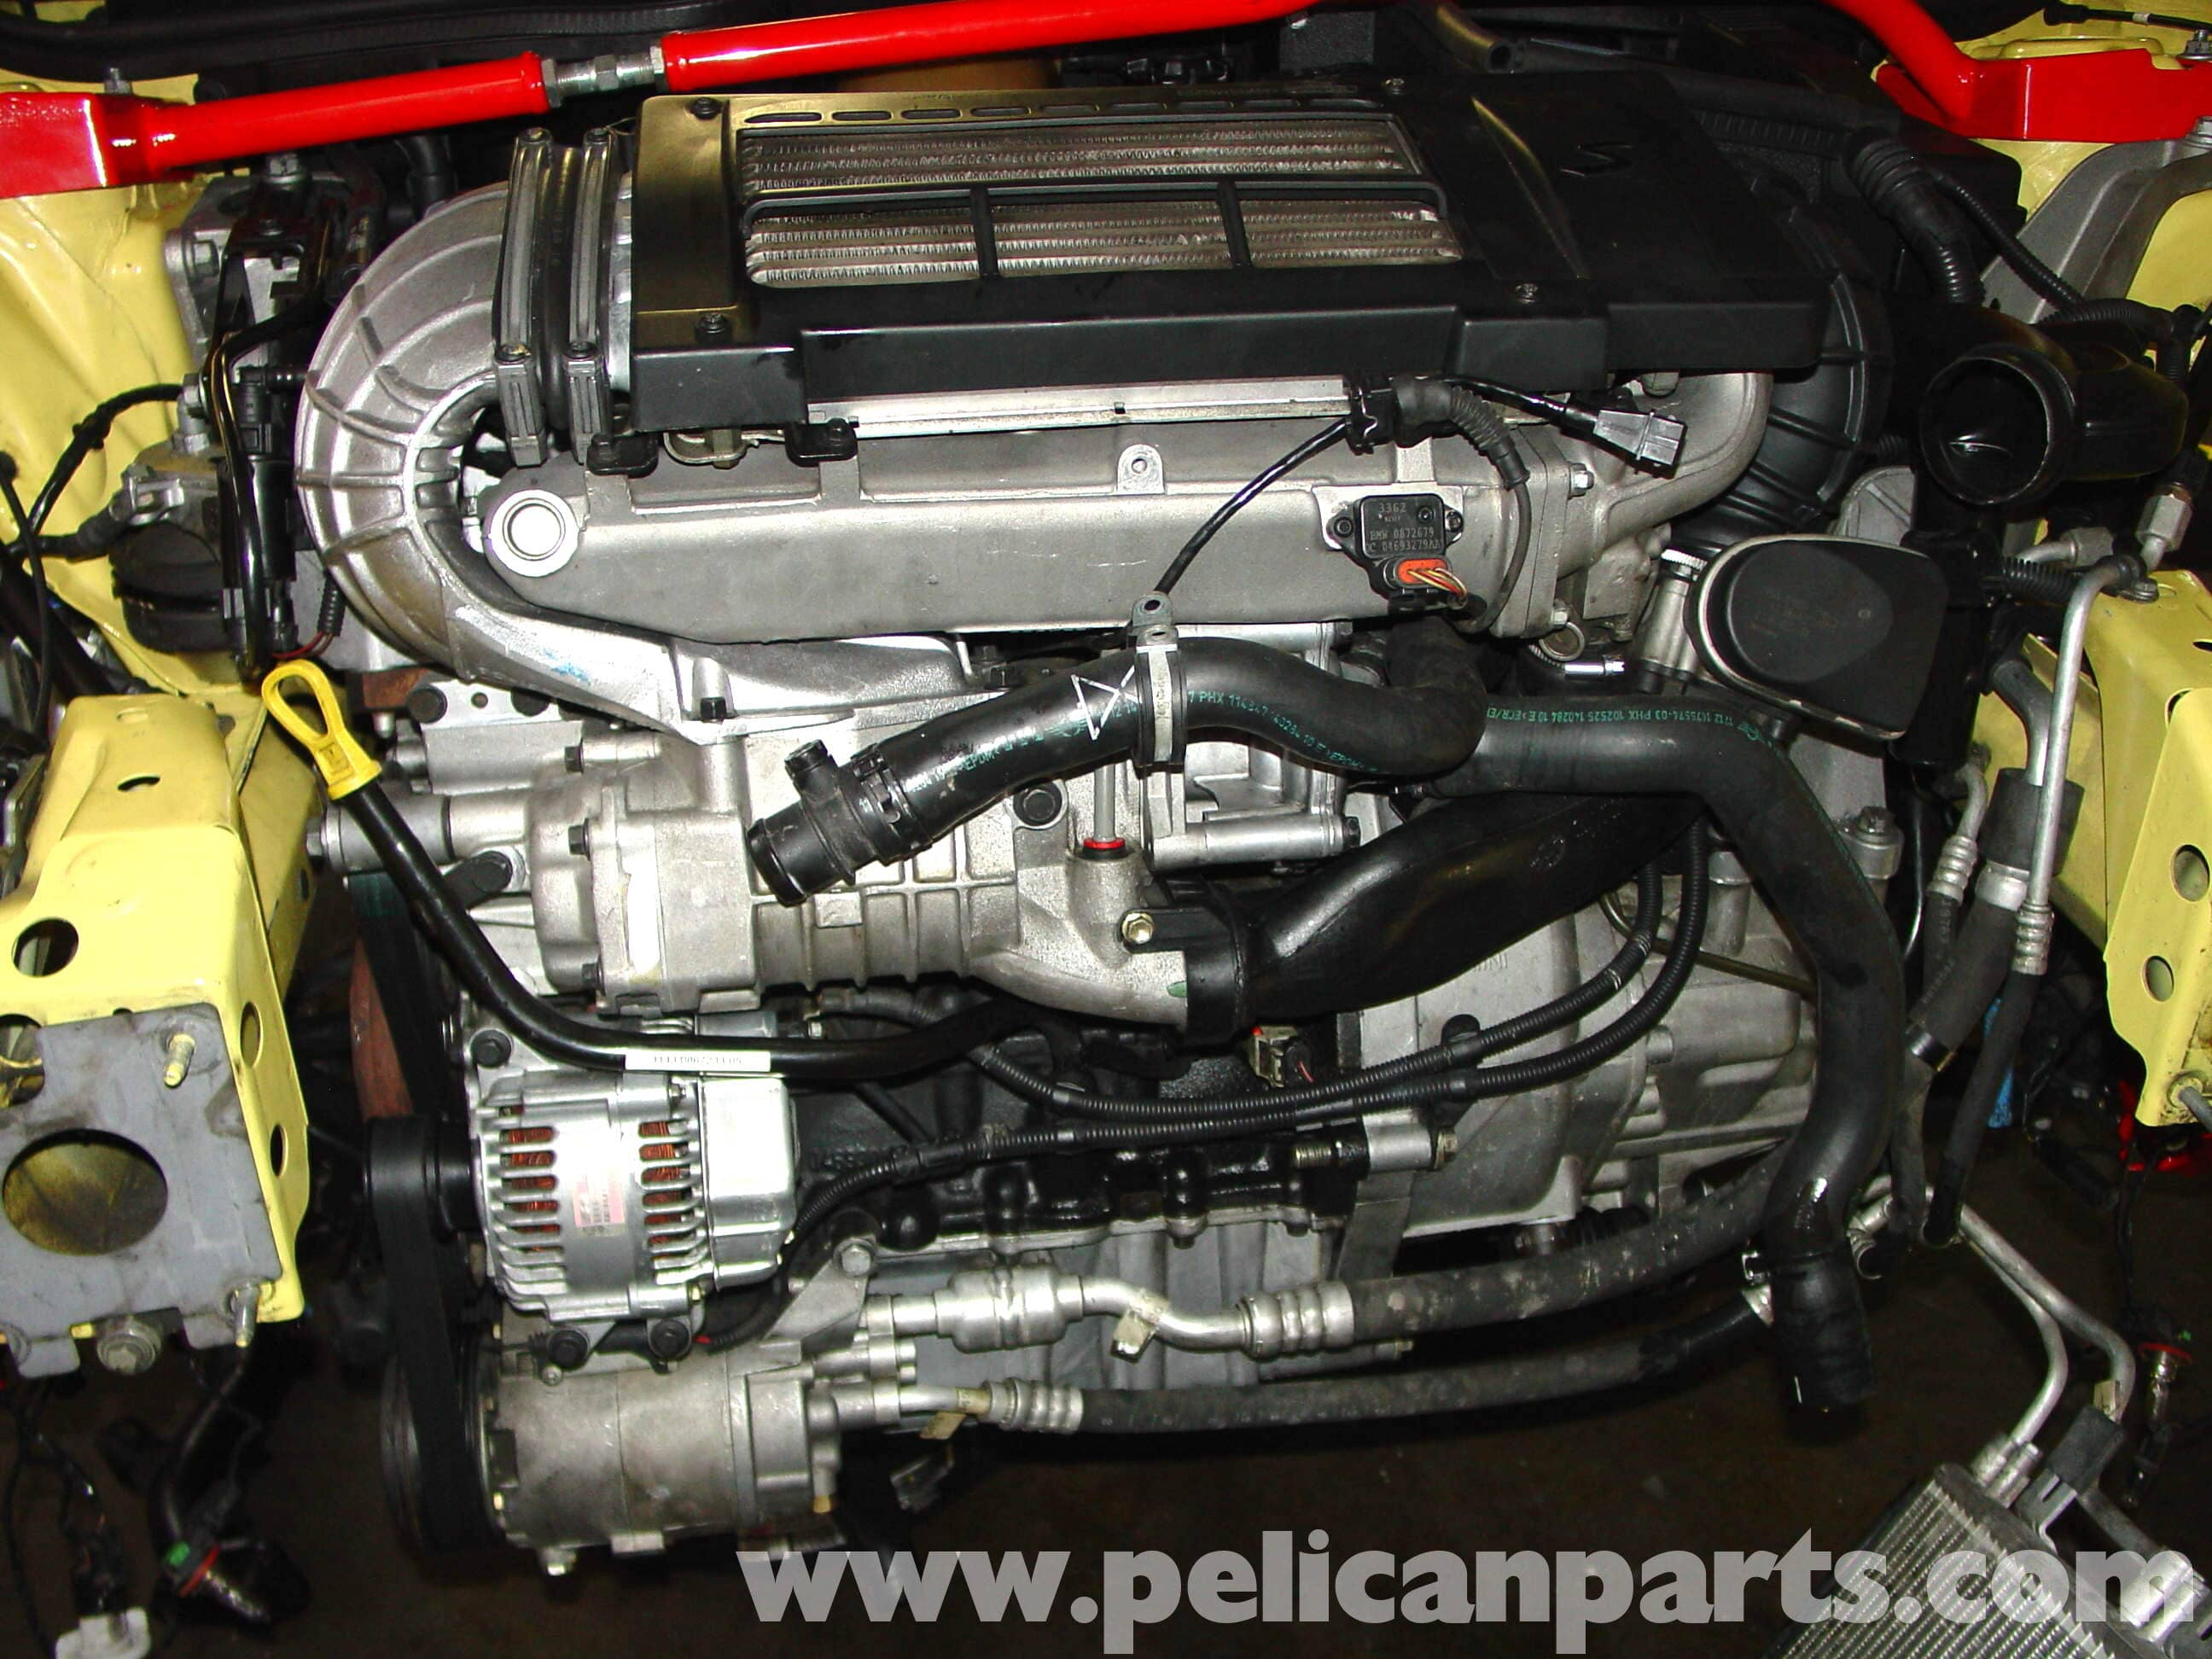 Mini Cooper Turbo Engine Schematics Opinions About Wiring Diagram \u2022 2011  Mini Cooper Safety 2011 Mini Cooper Wiring Diagram